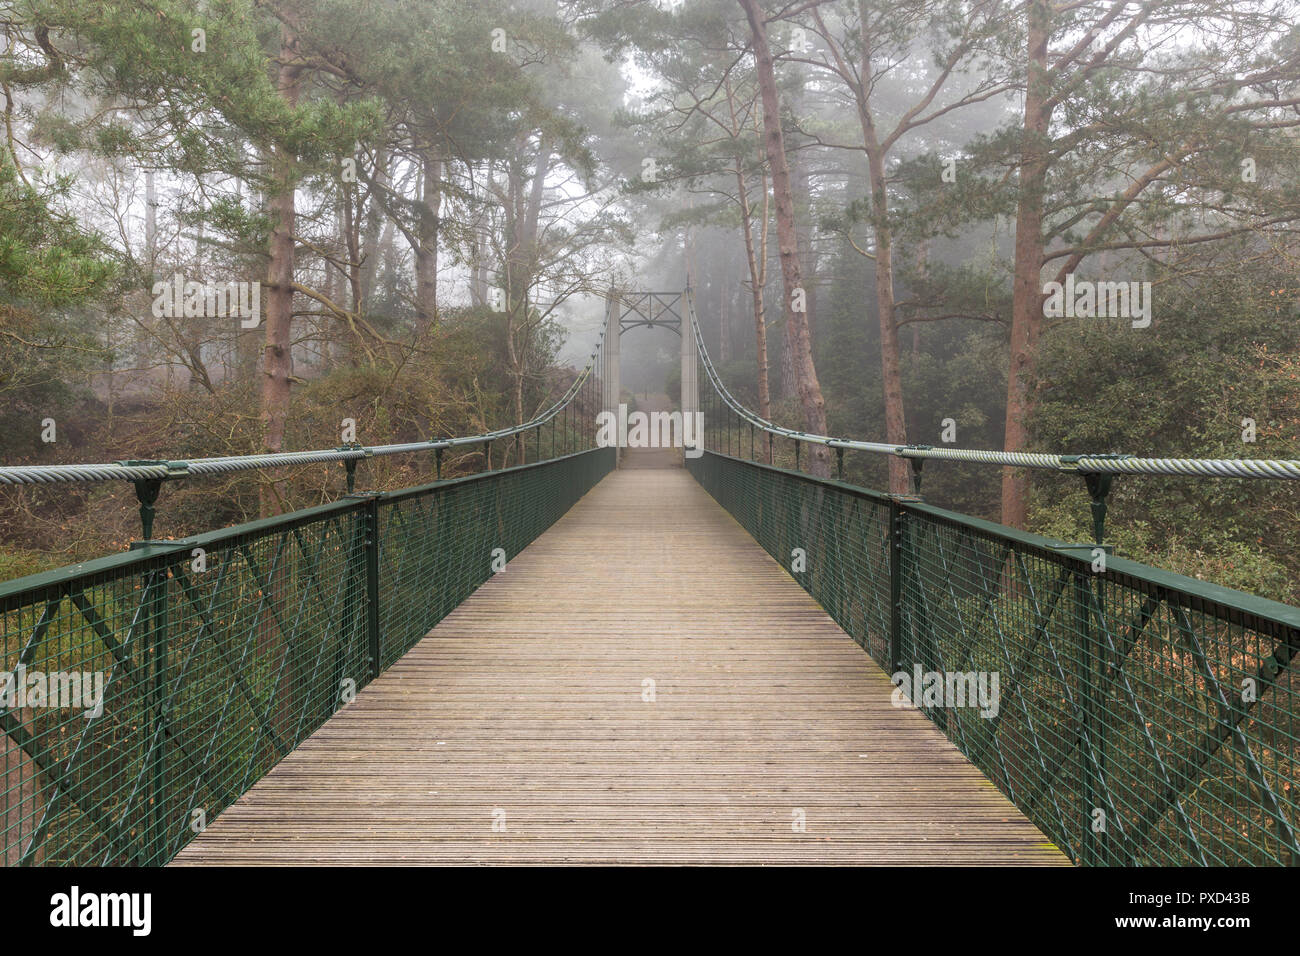 Bournemouth footbridge in the mist over a chime - Stock Image